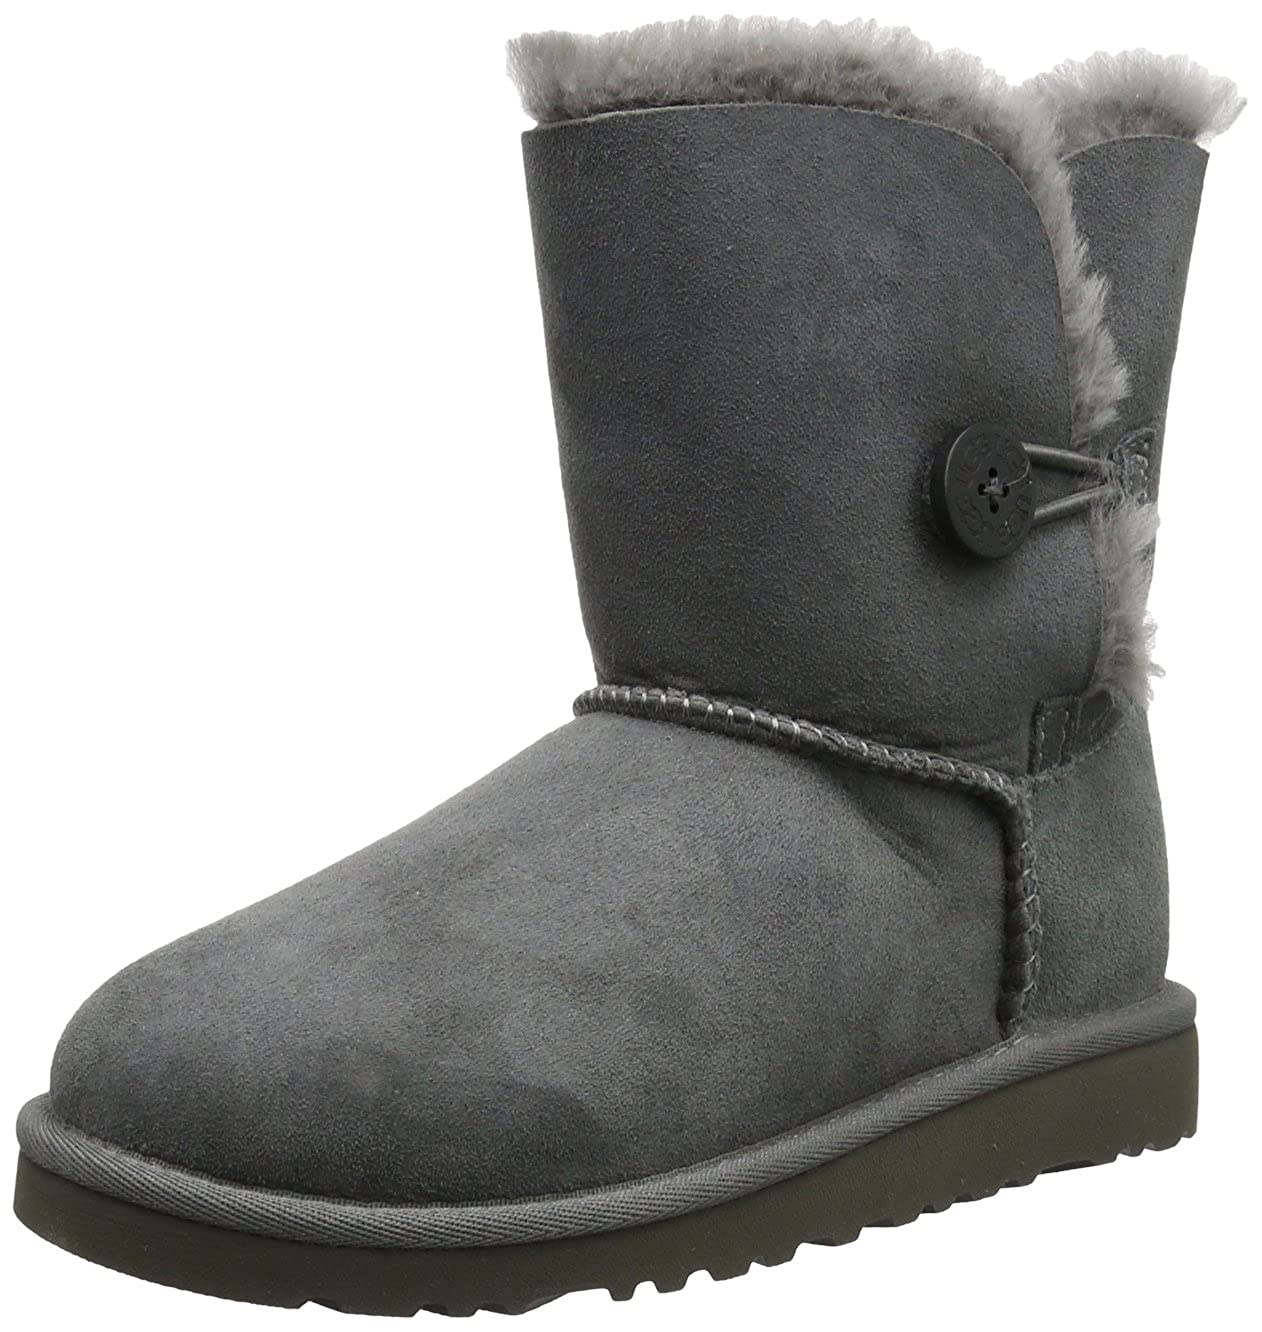 Ugg Australia Bailey Button Rasprose Classic, Boots fille 5991